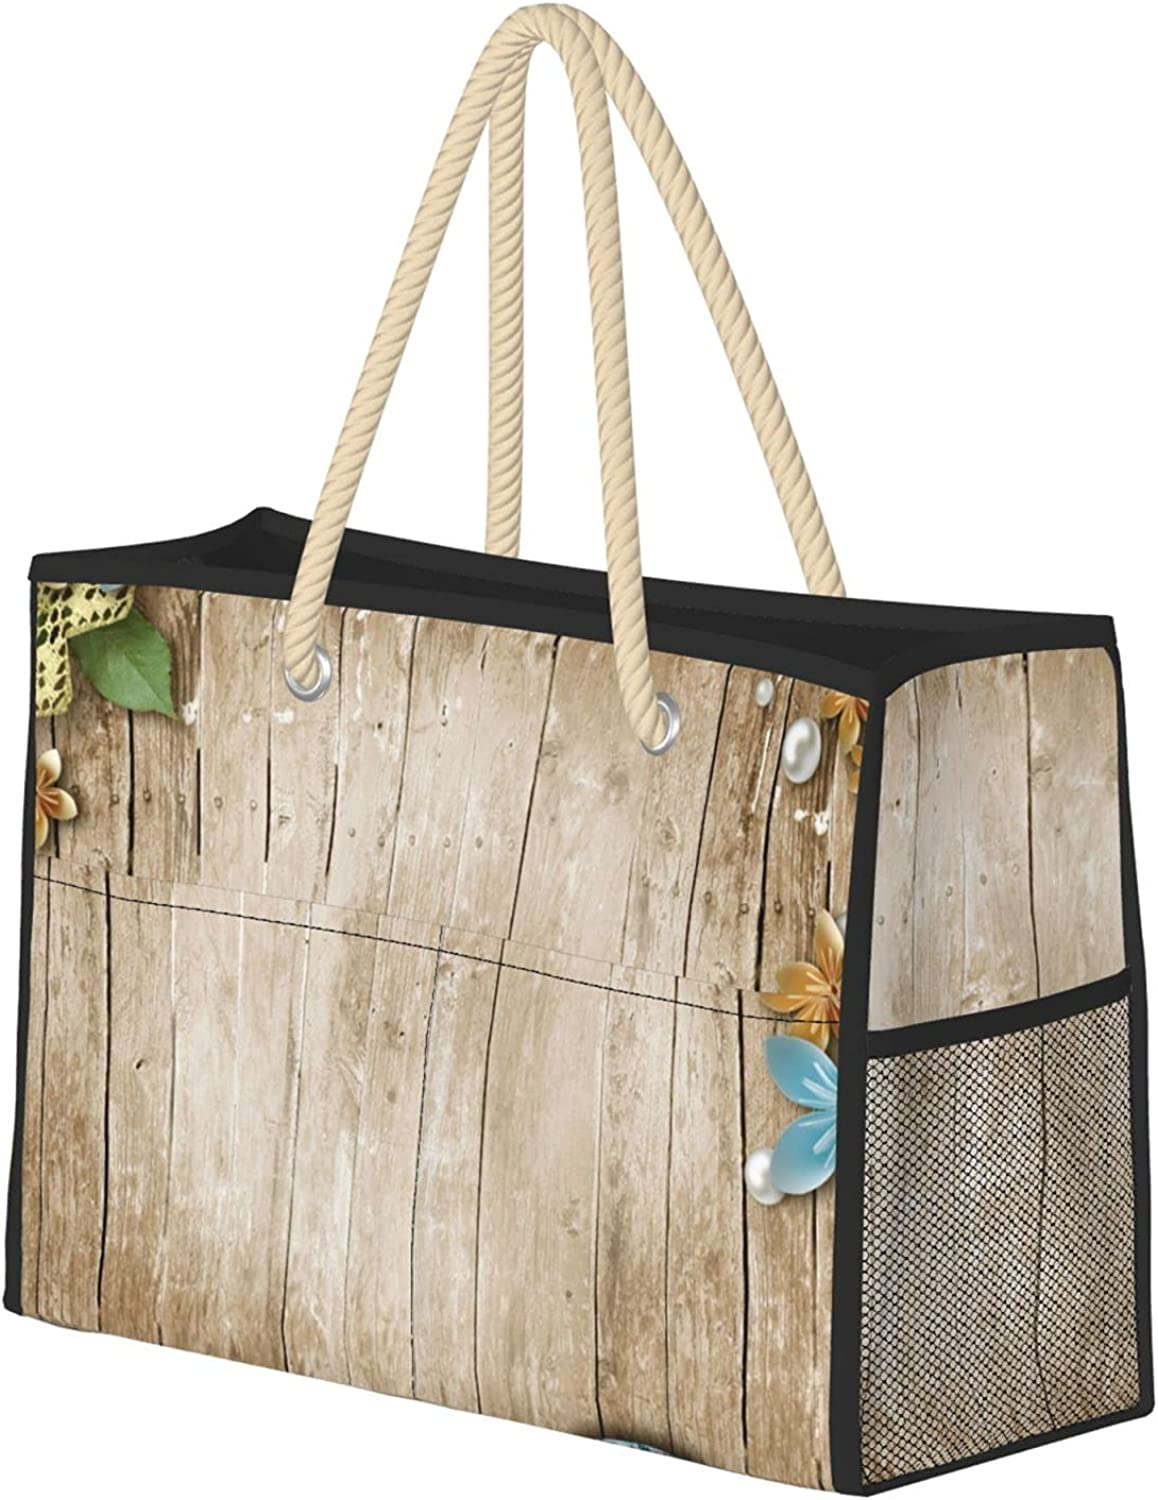 Old Finally resale start Wooden Background Women Beach Utility Re Travel Tote Bag Max 52% OFF